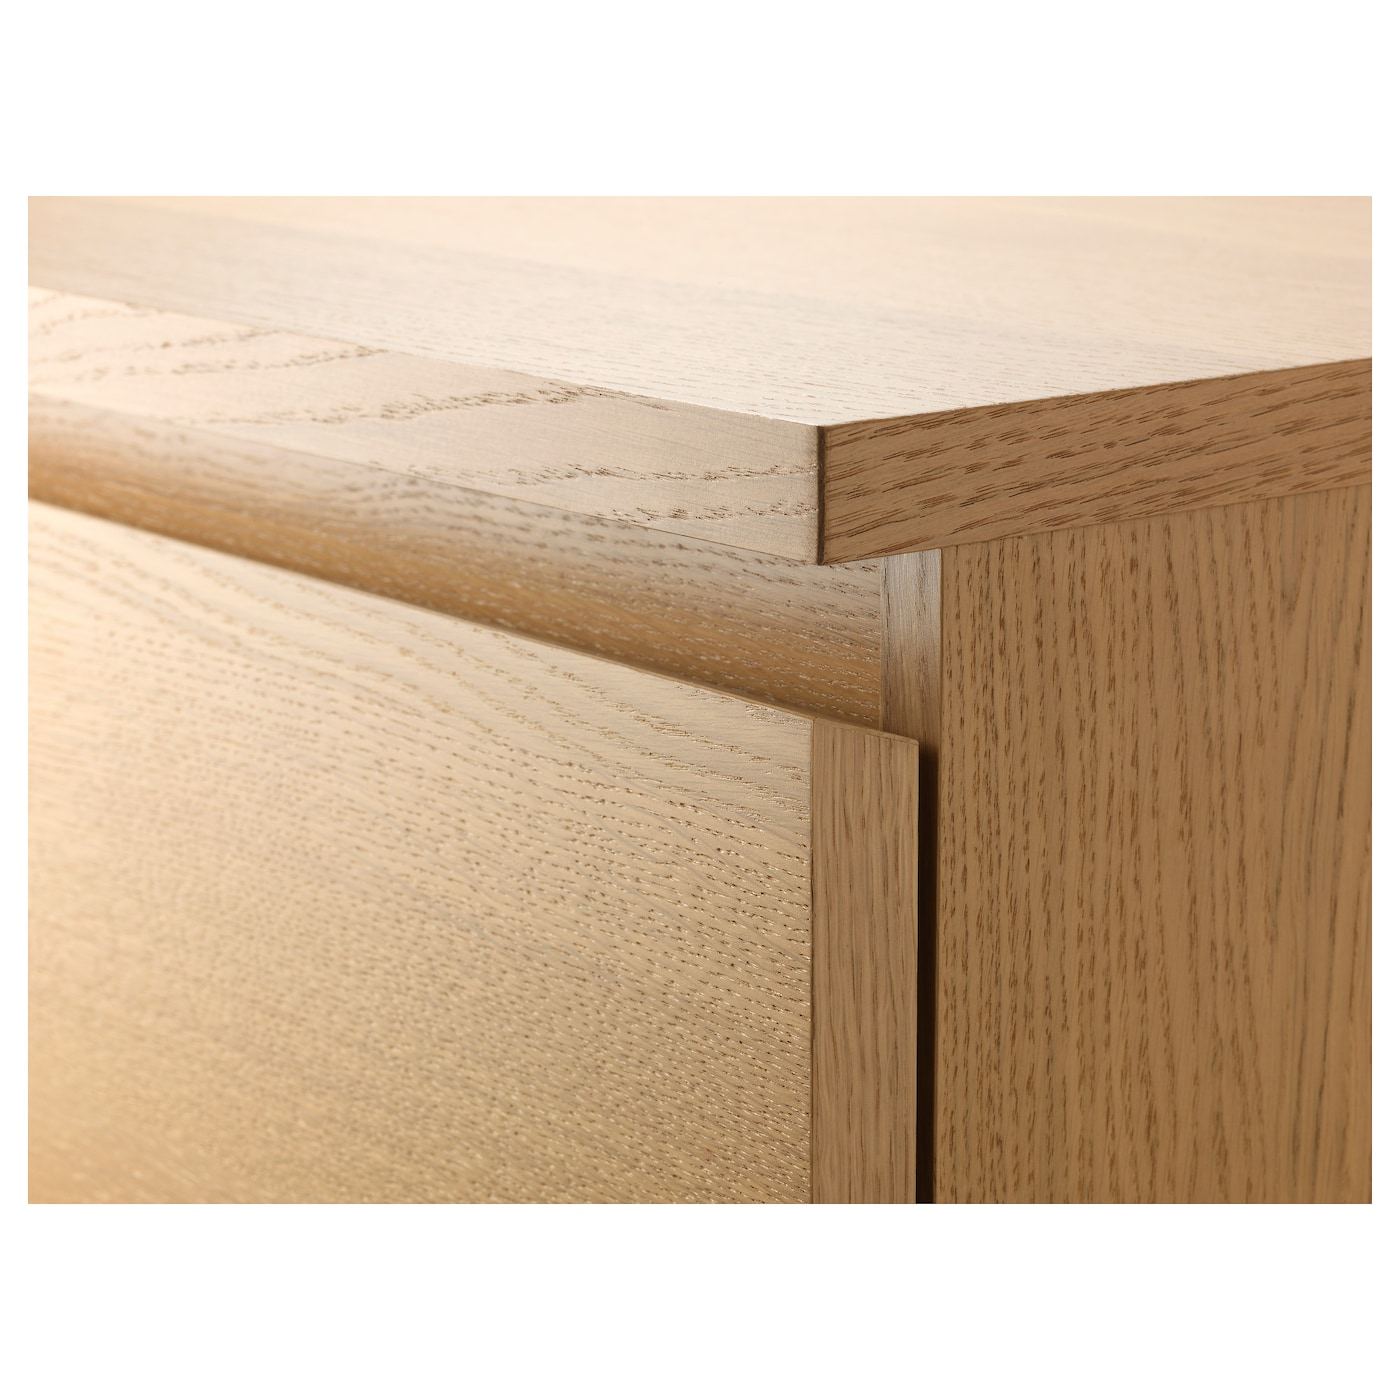 IKEA MALM chest of 3 drawers Real wood veneer will make this chest of drawers age gracefully.